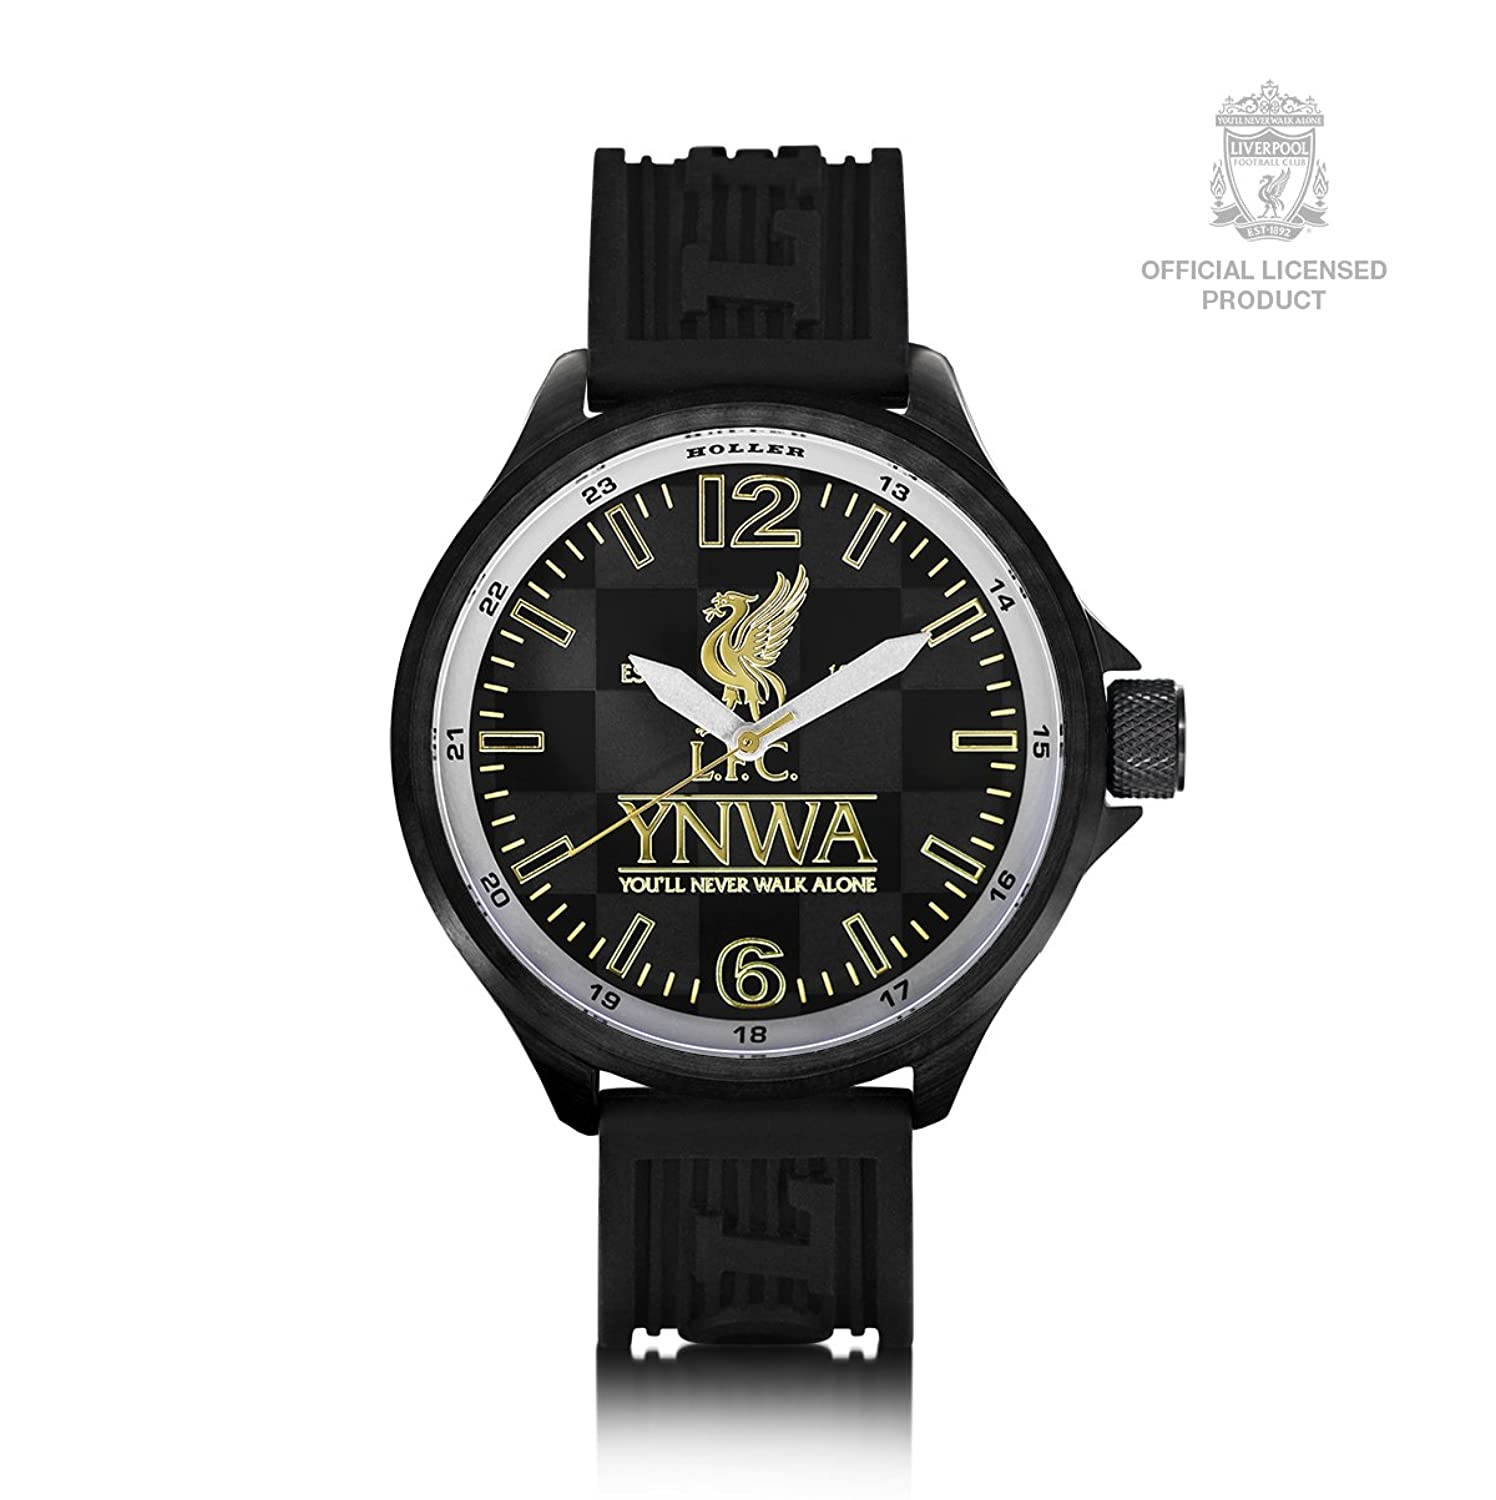 Holler (Anfield Liverpool Football Club Watch 2